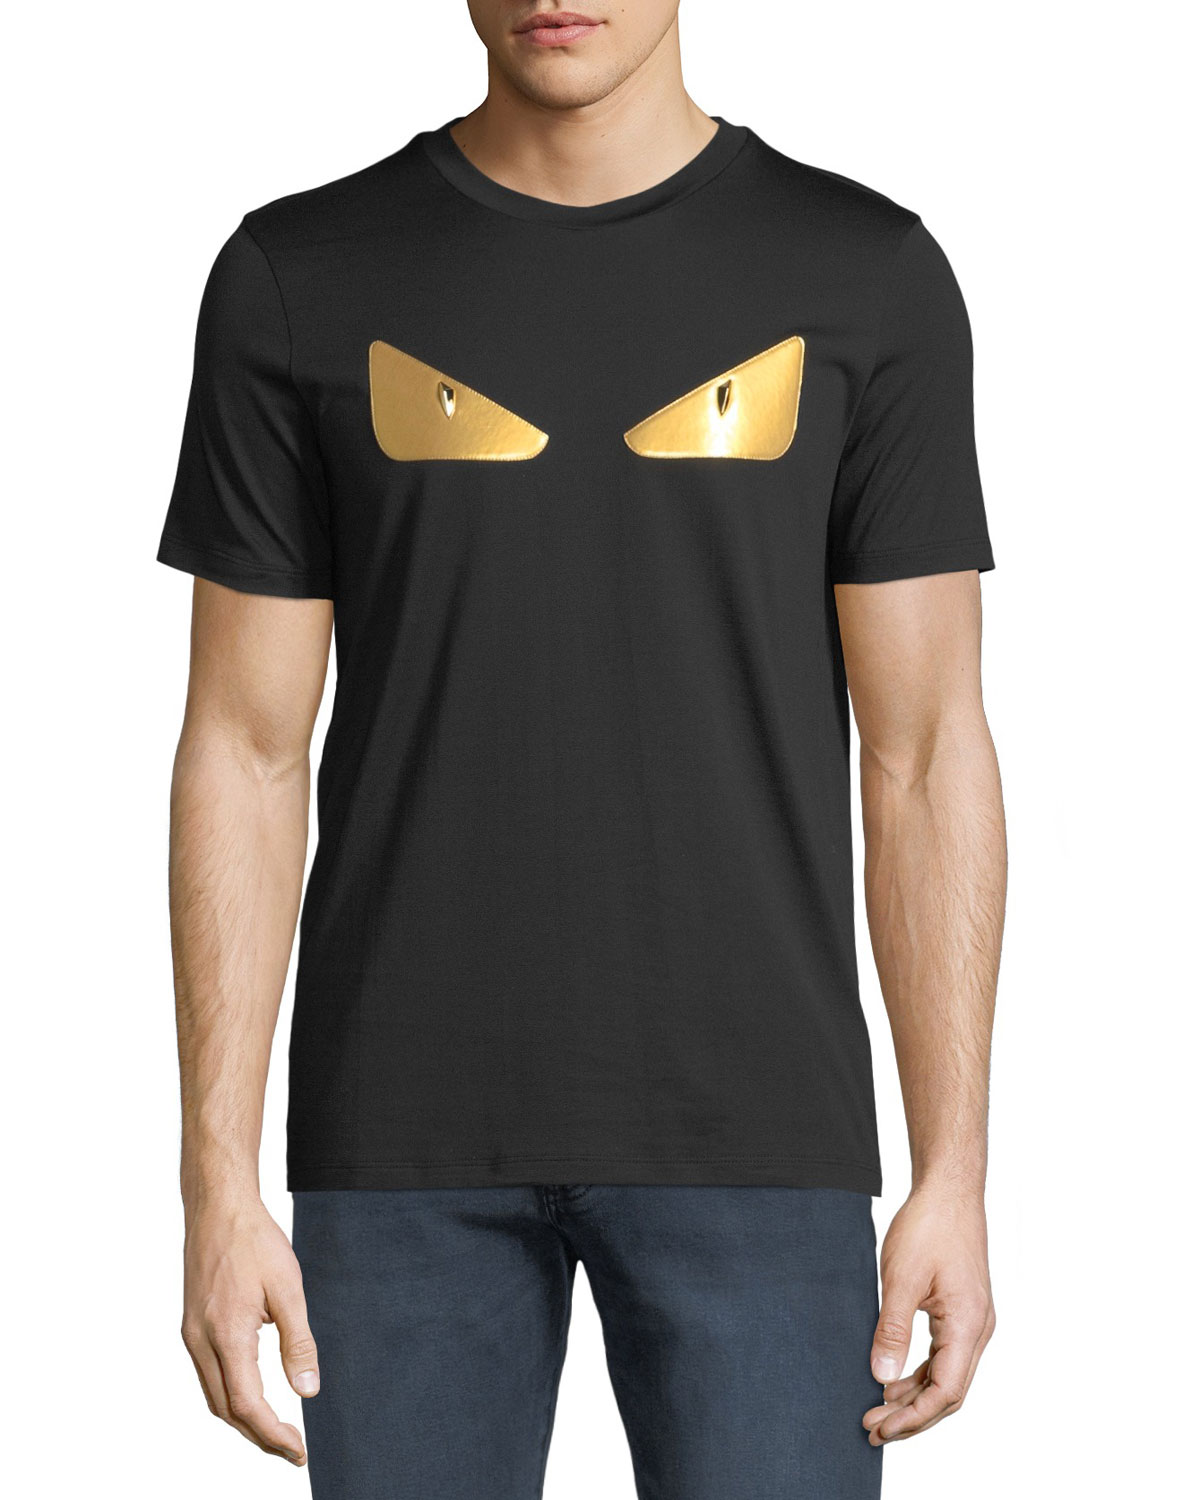 b978dc4a8f Fendi Men's Gold Bugs Applique T-Shirt | Neiman Marcus